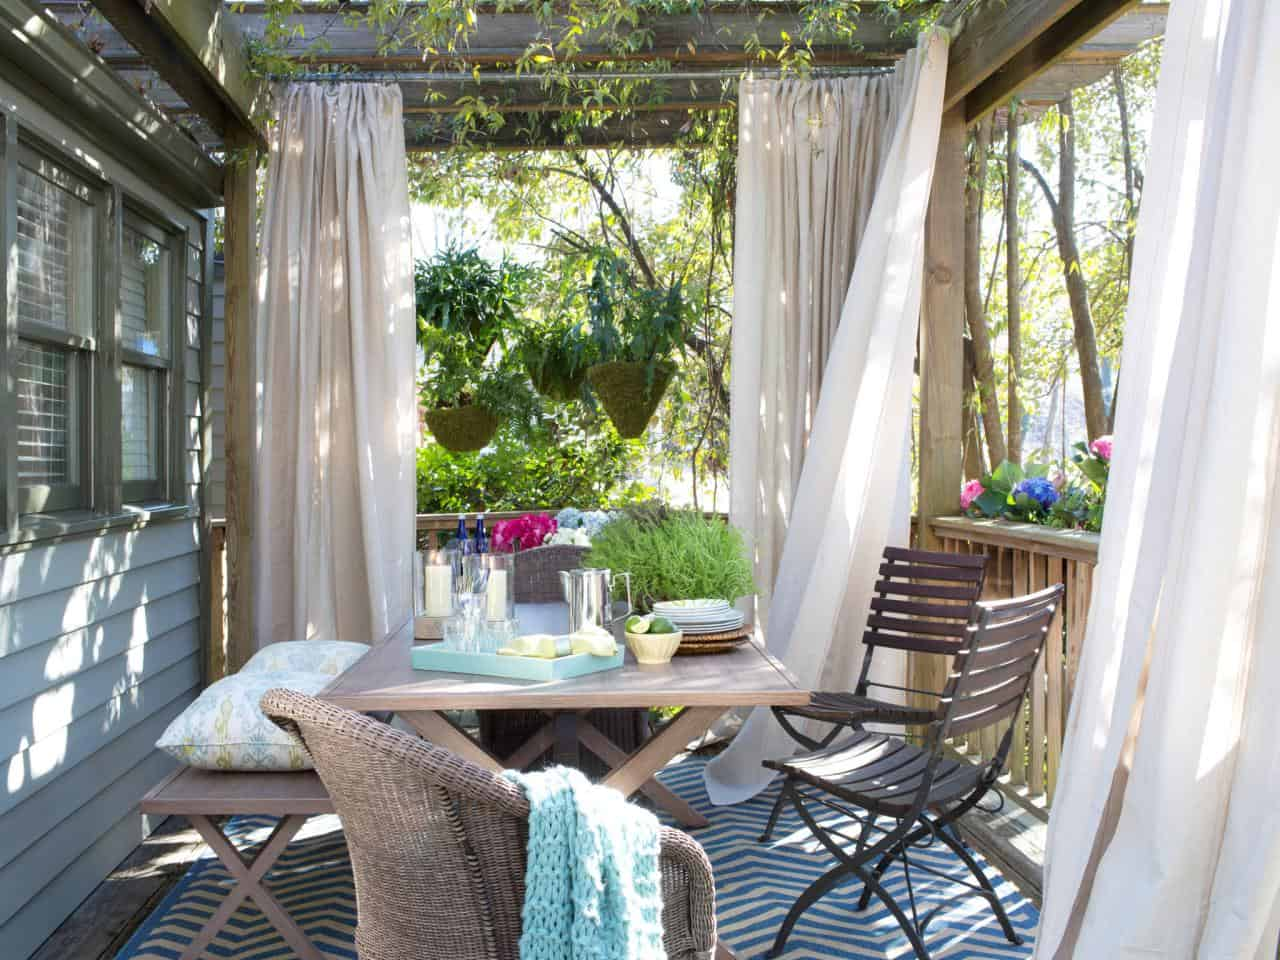 A rustic aesthetics has become a top contender when it comes to home decor even in the outdoor space.